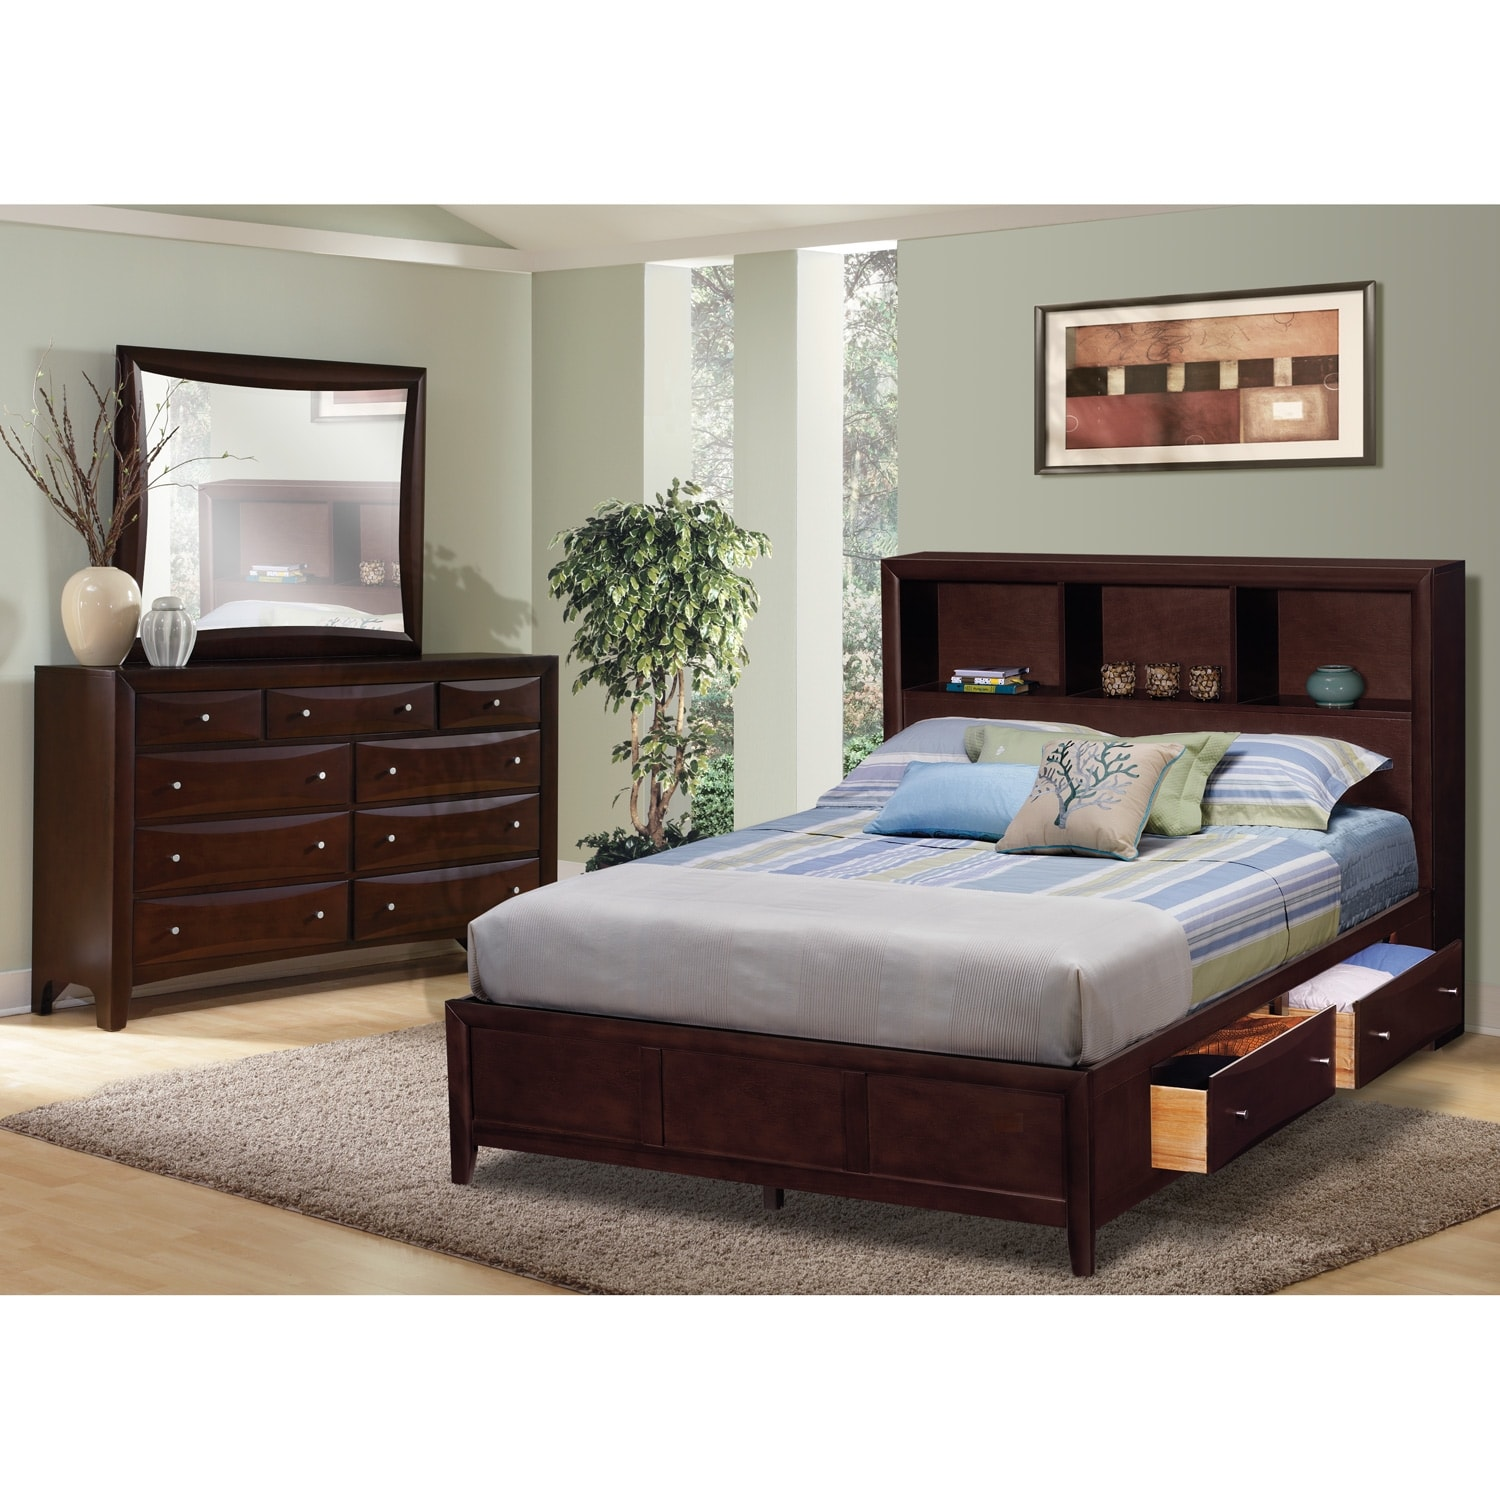 Kensington Queen Wall Bed